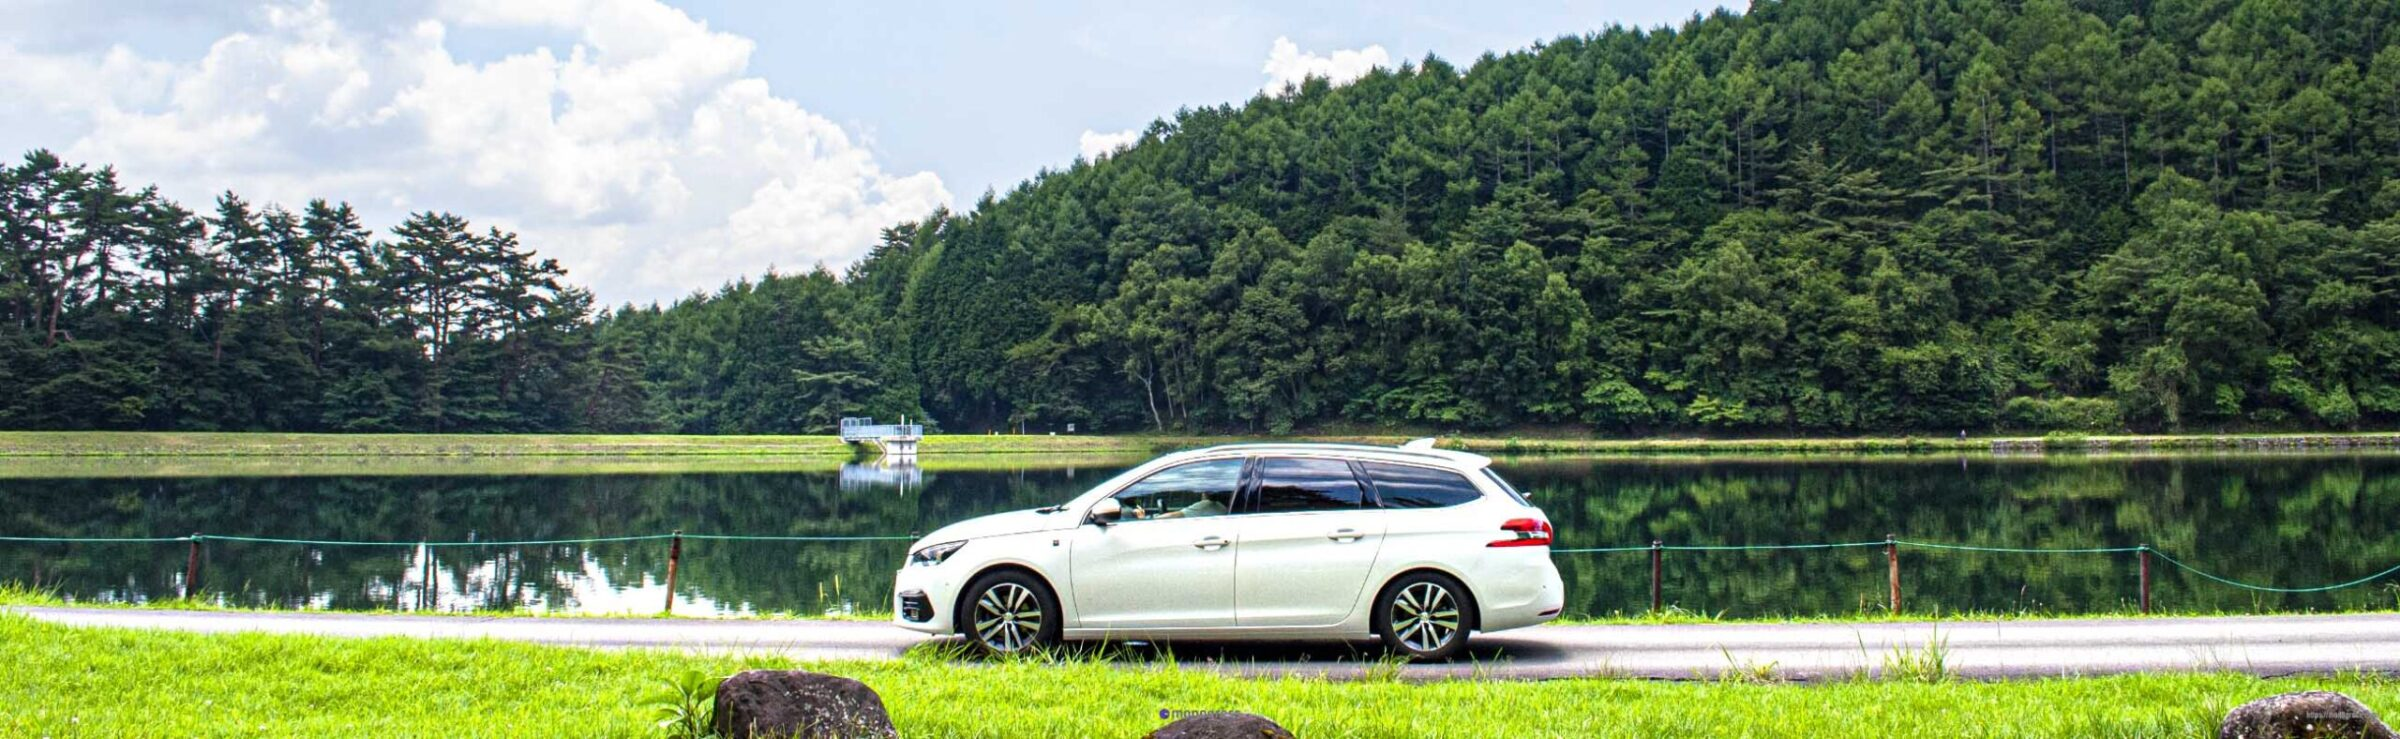 Peugeot 308SW and 湖